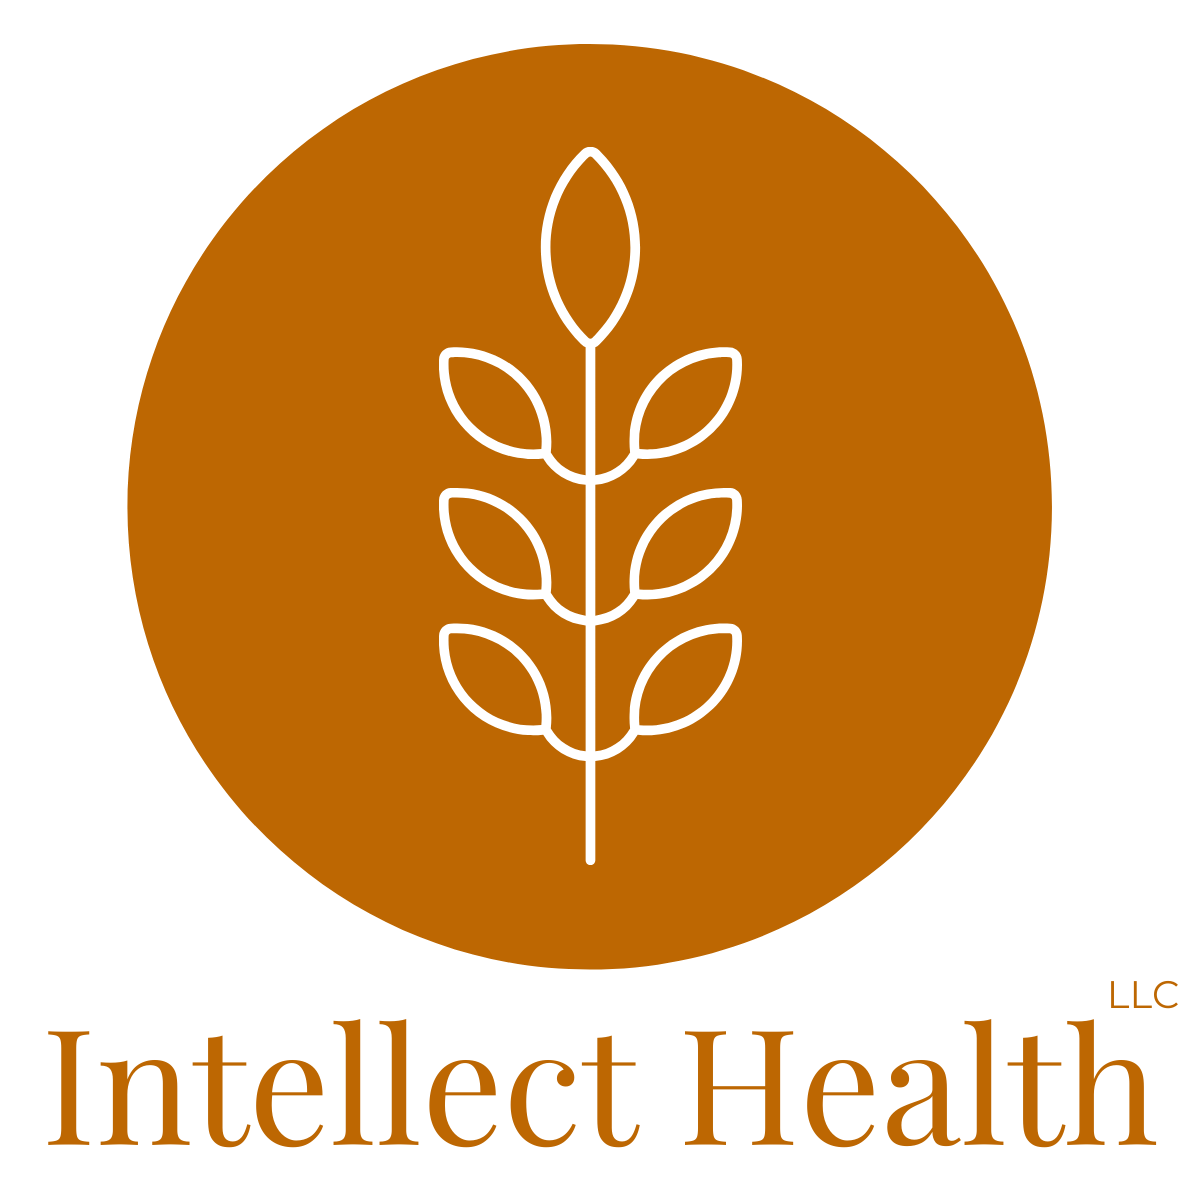 Intellect Health